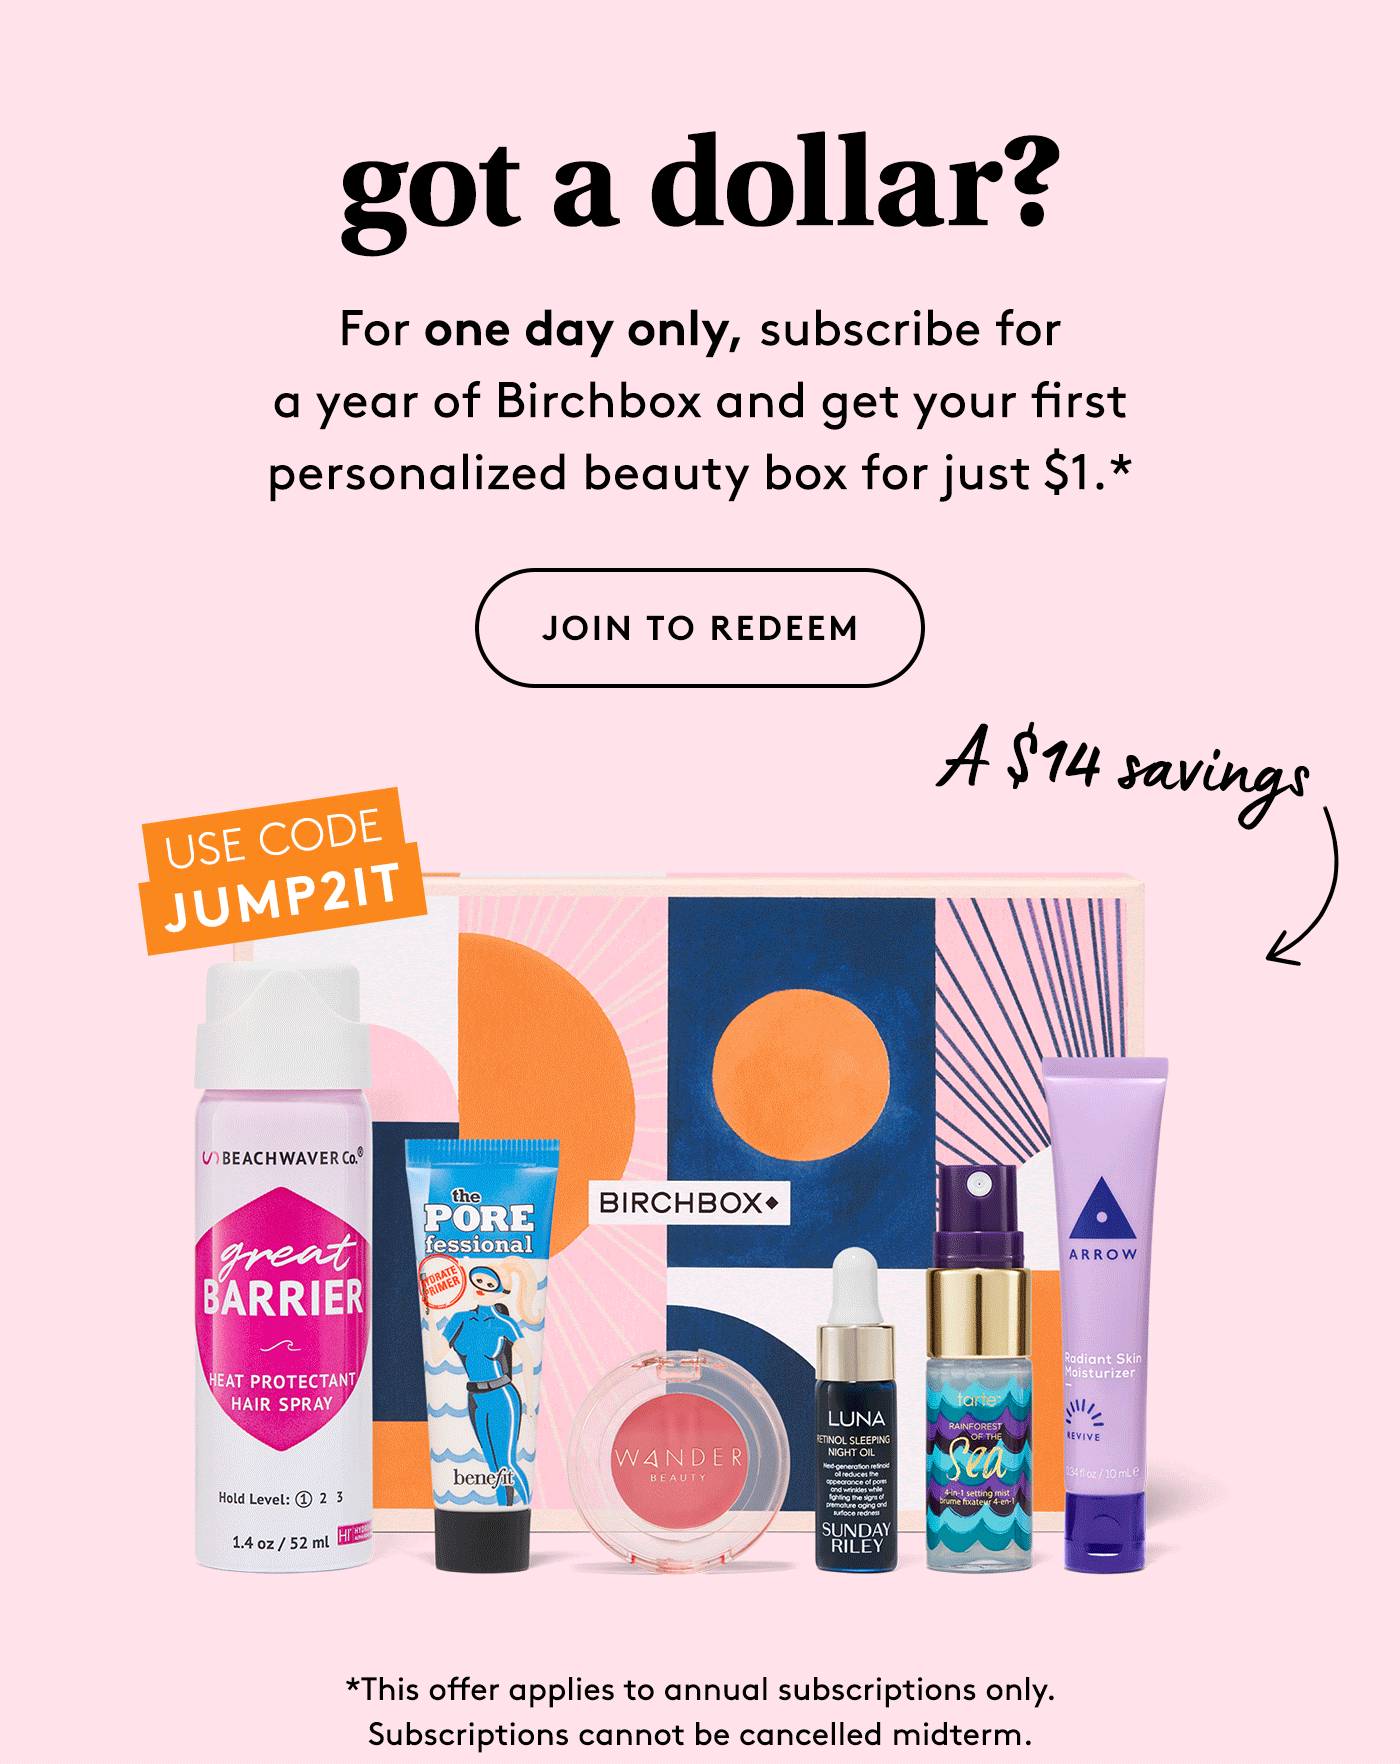 Birchbox Leap Day Sale: First Box $1 with Annual Subscription!